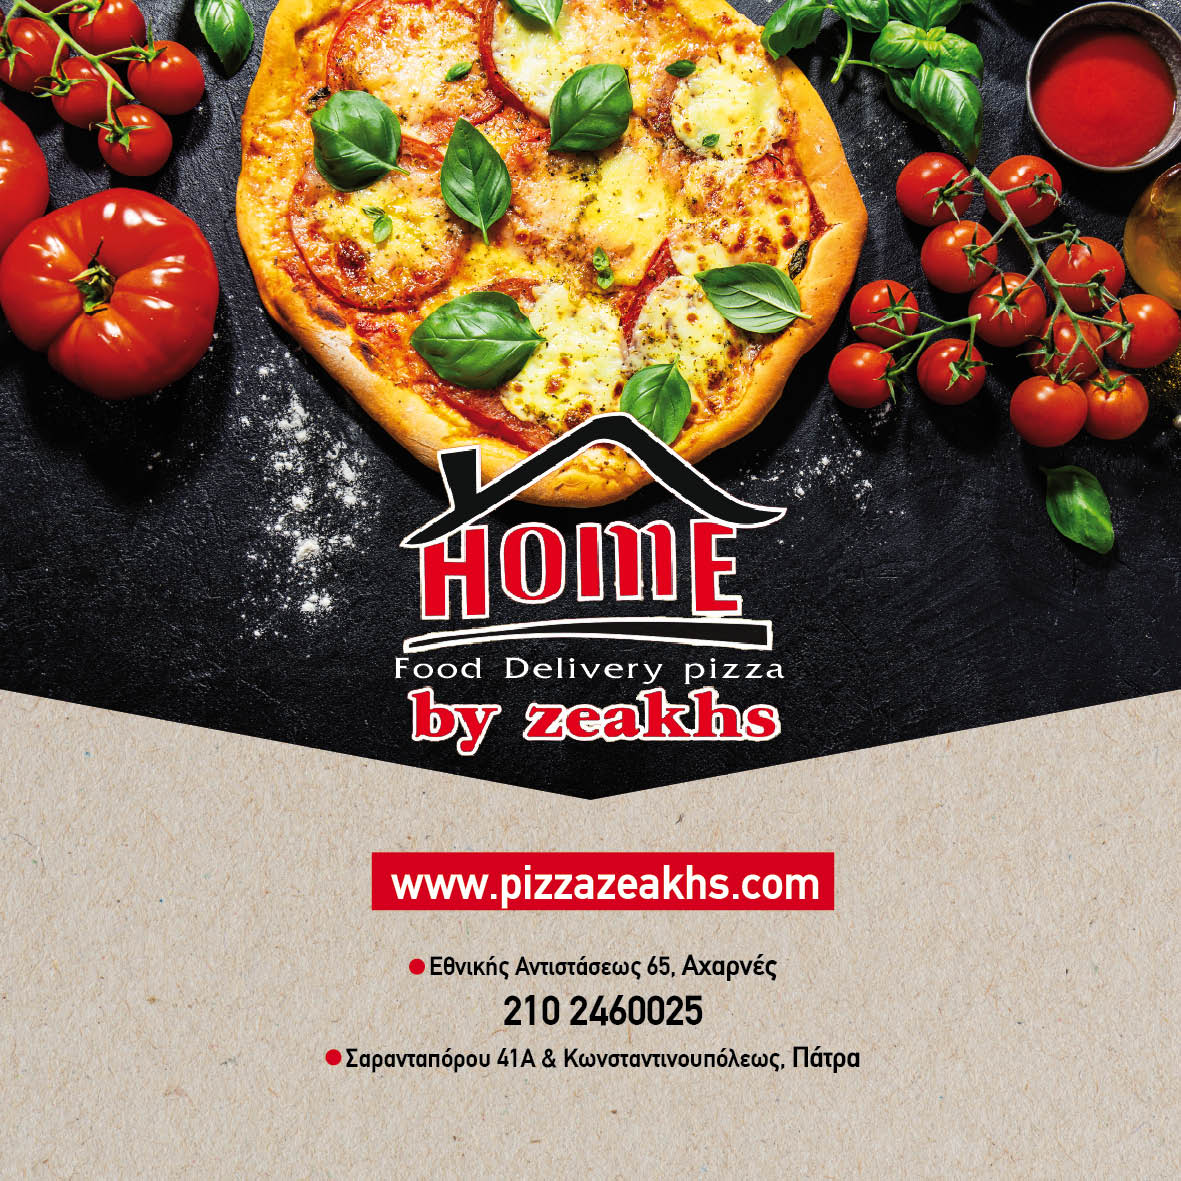 Home Food Delivery Pizza By zeakhs